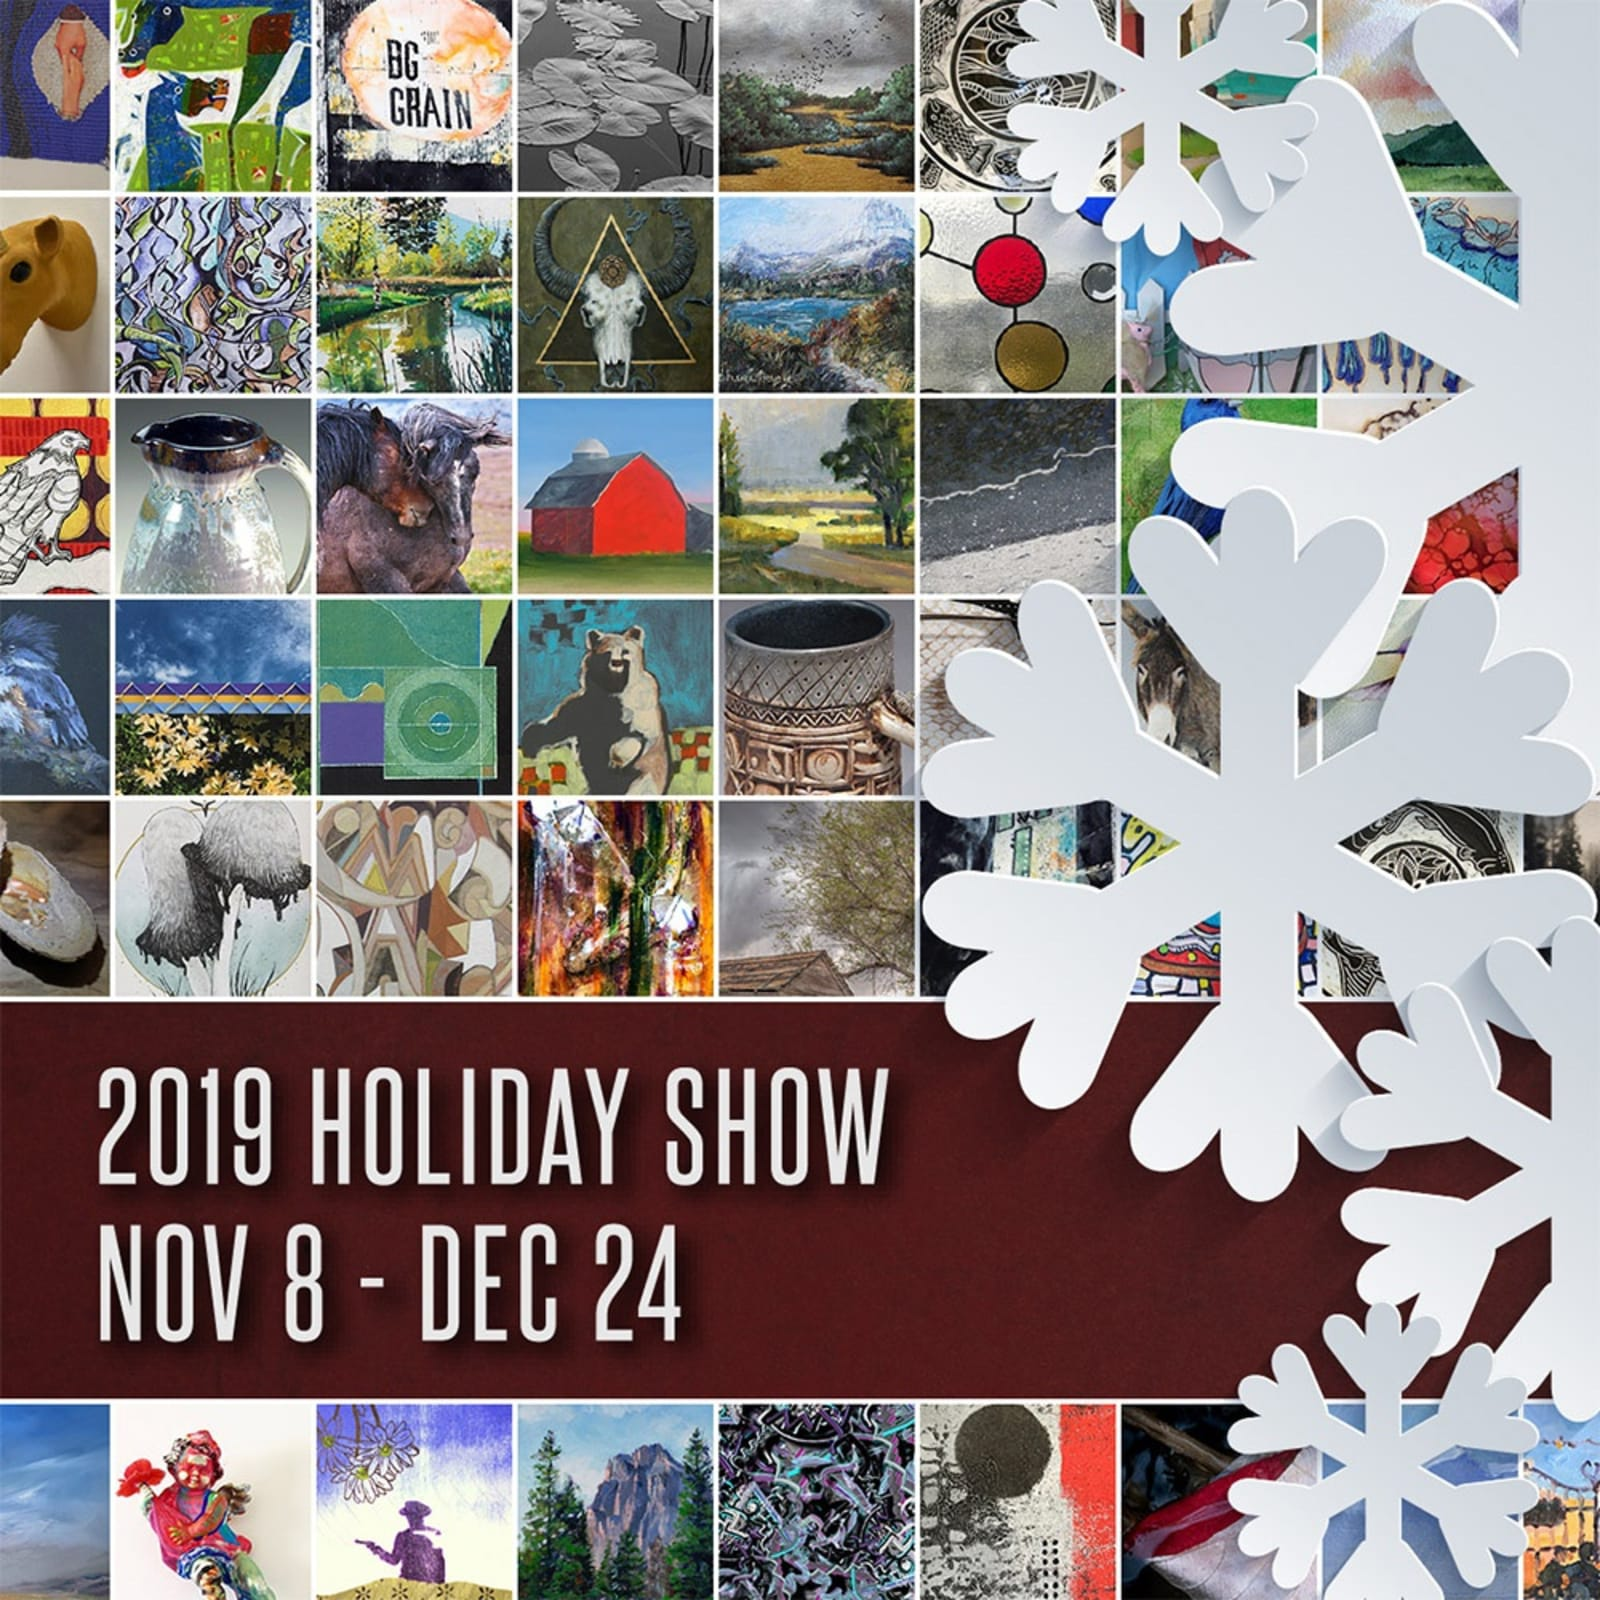 6th Annual Holiday Show